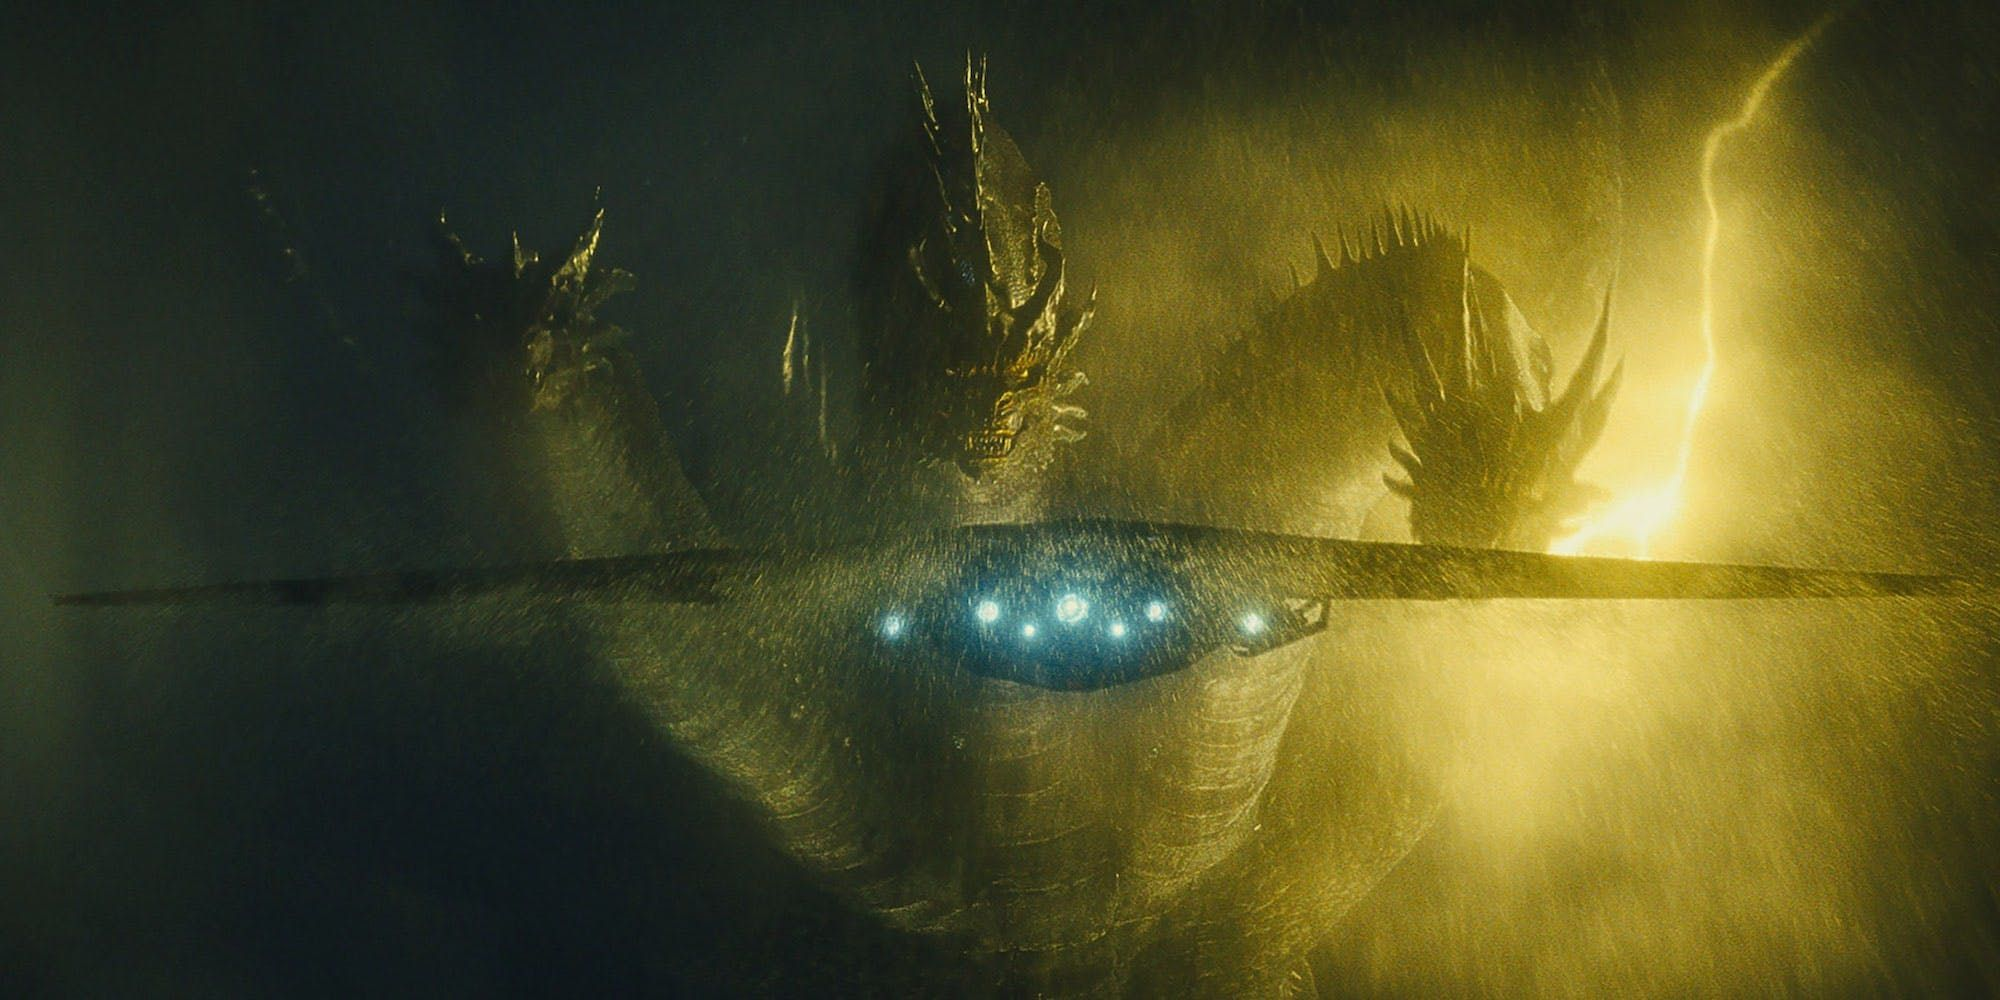 The Titans Rise and Do Battle in Epic New 'Godzilla: King of the Monsters' TV Spot - Bloody Disgusting